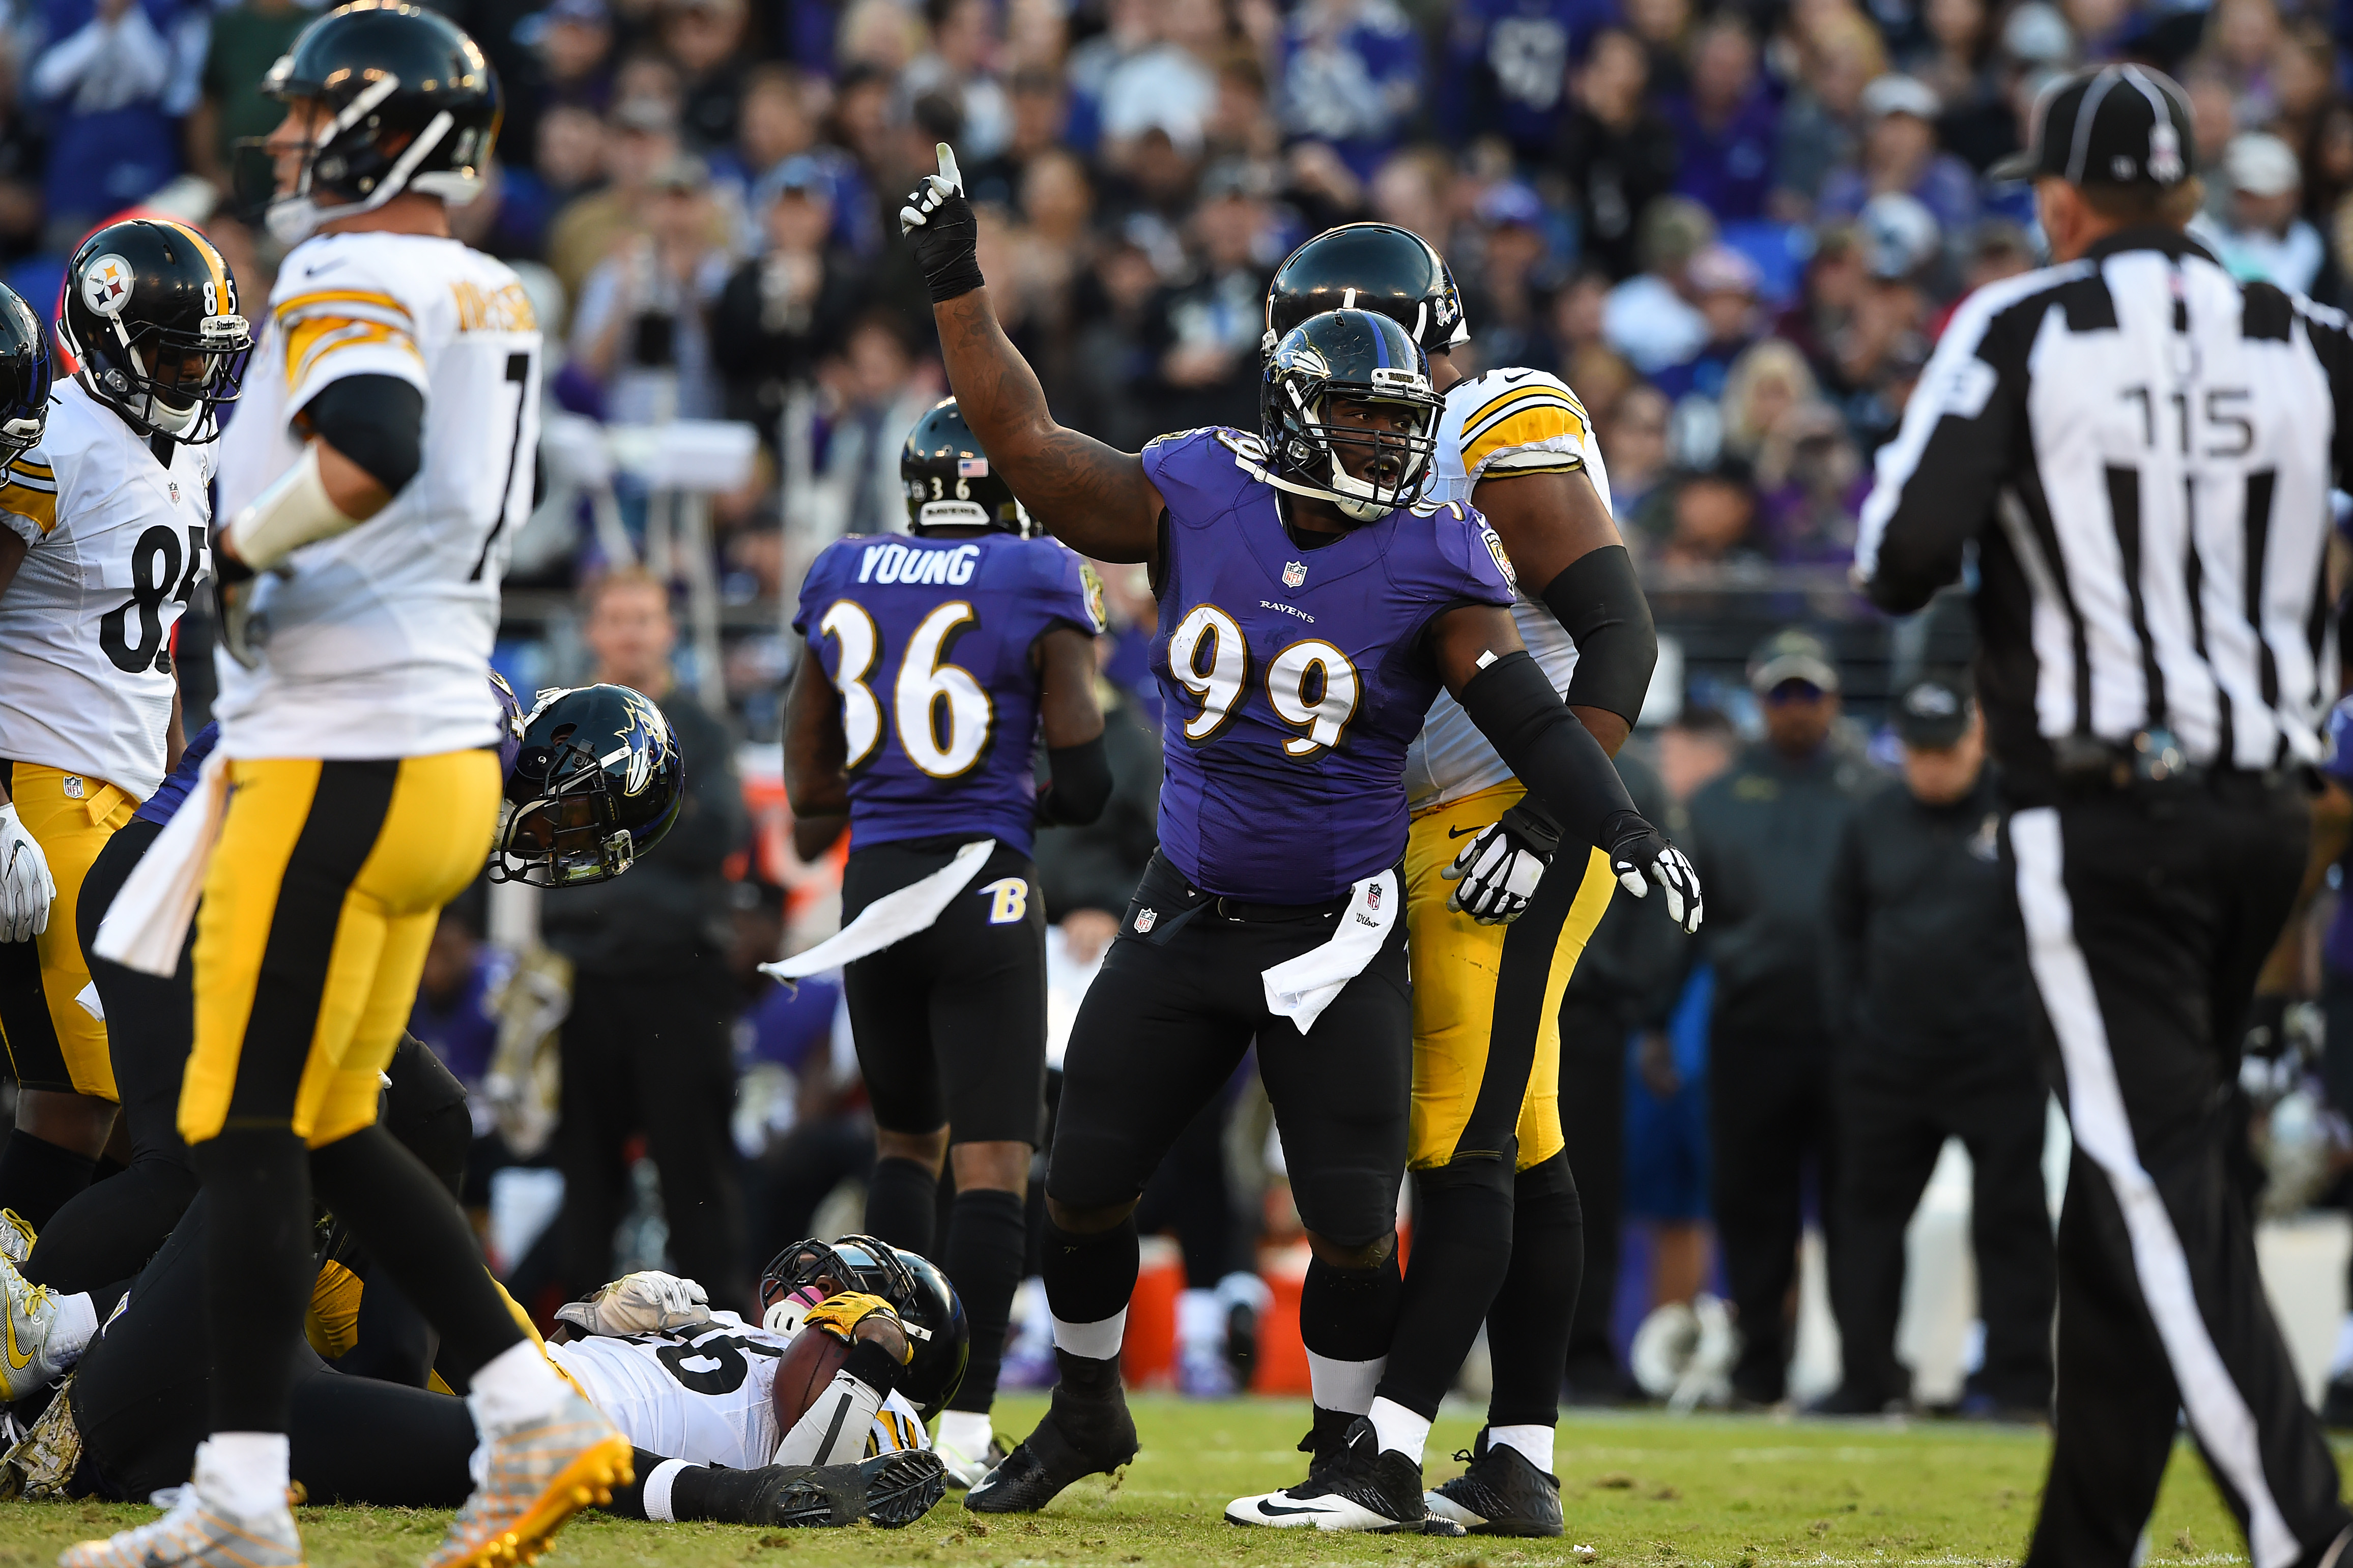 9659034-nfl-pittsburgh-steelers-at-baltimore-ravens